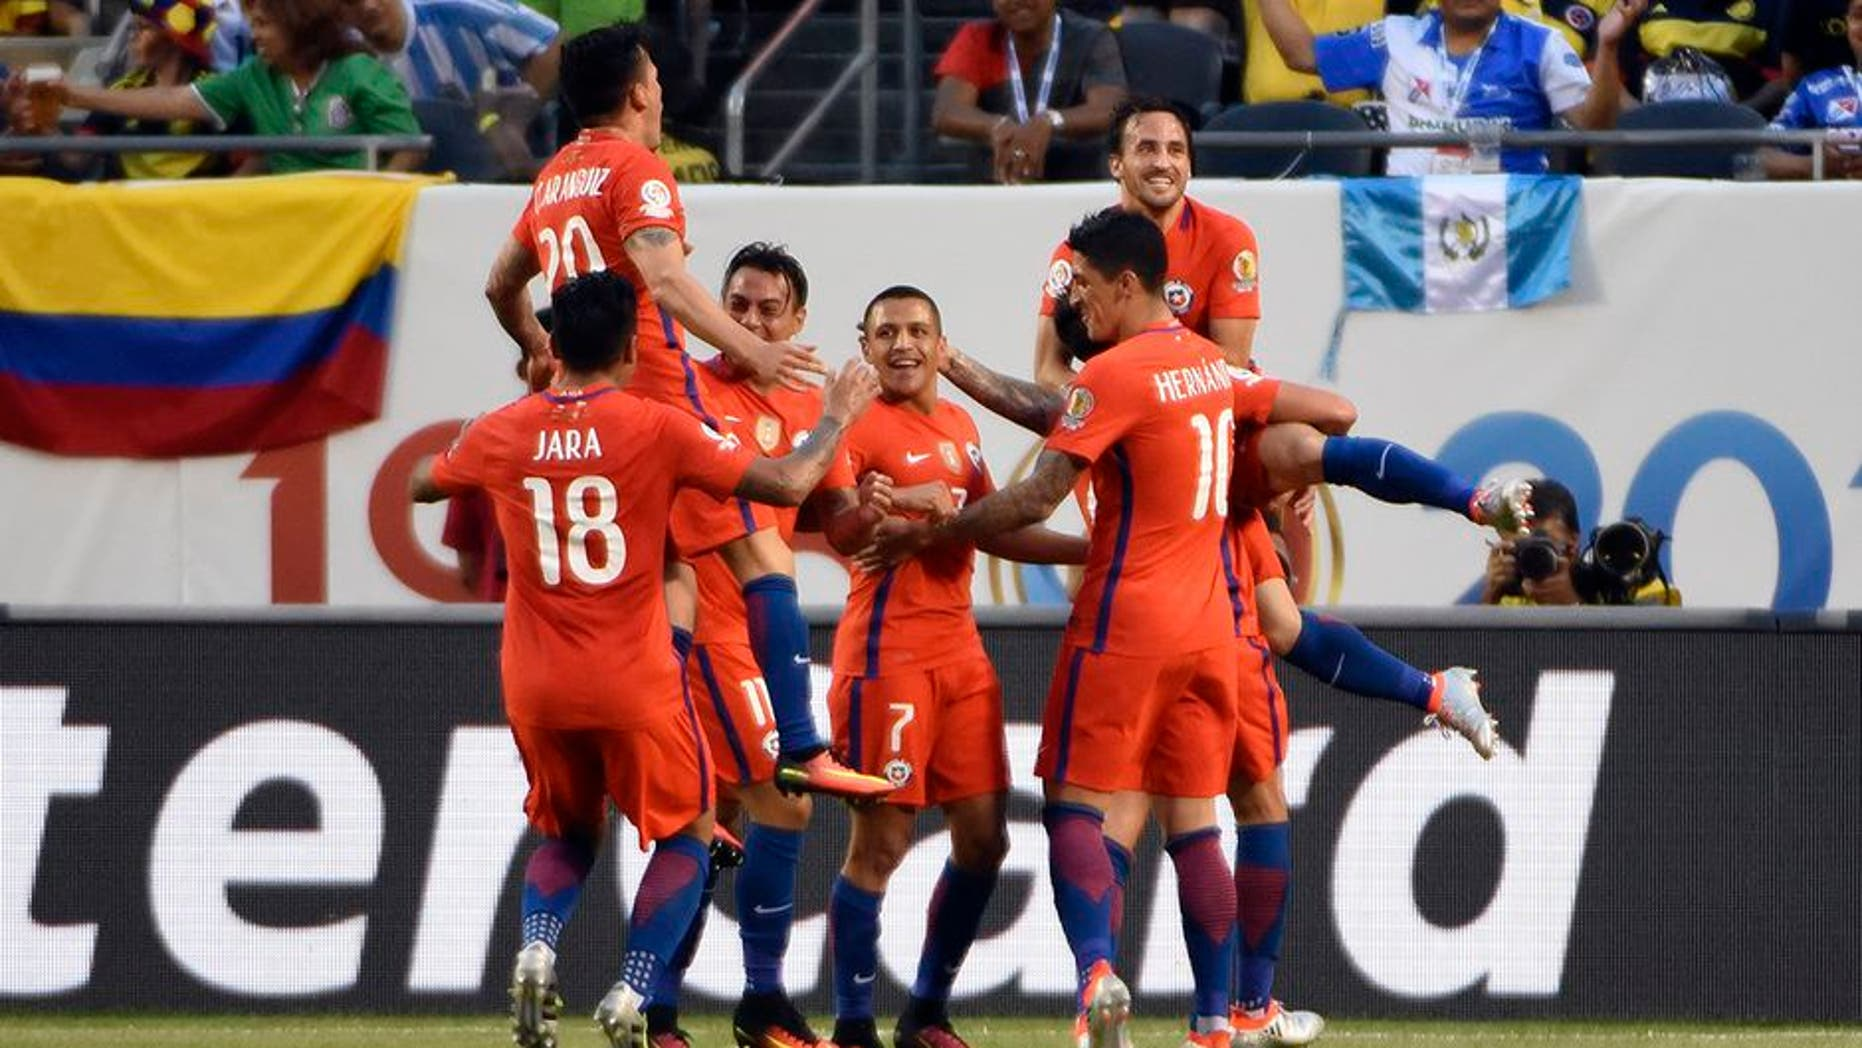 CHICAGO, ILLINOIS - JUNE 22: Jose Pedro Fuenzalida #6 of Chile celebrates with his teamamates after scoring his team's second goal during a Semifinal match between Colombia and Chile at Soldier Field as part of Copa America Centenario US 2016 on June 22, 2016 in Chicago, Illinois, US. (Photo by David Banks/LatinContent/Getty Images)